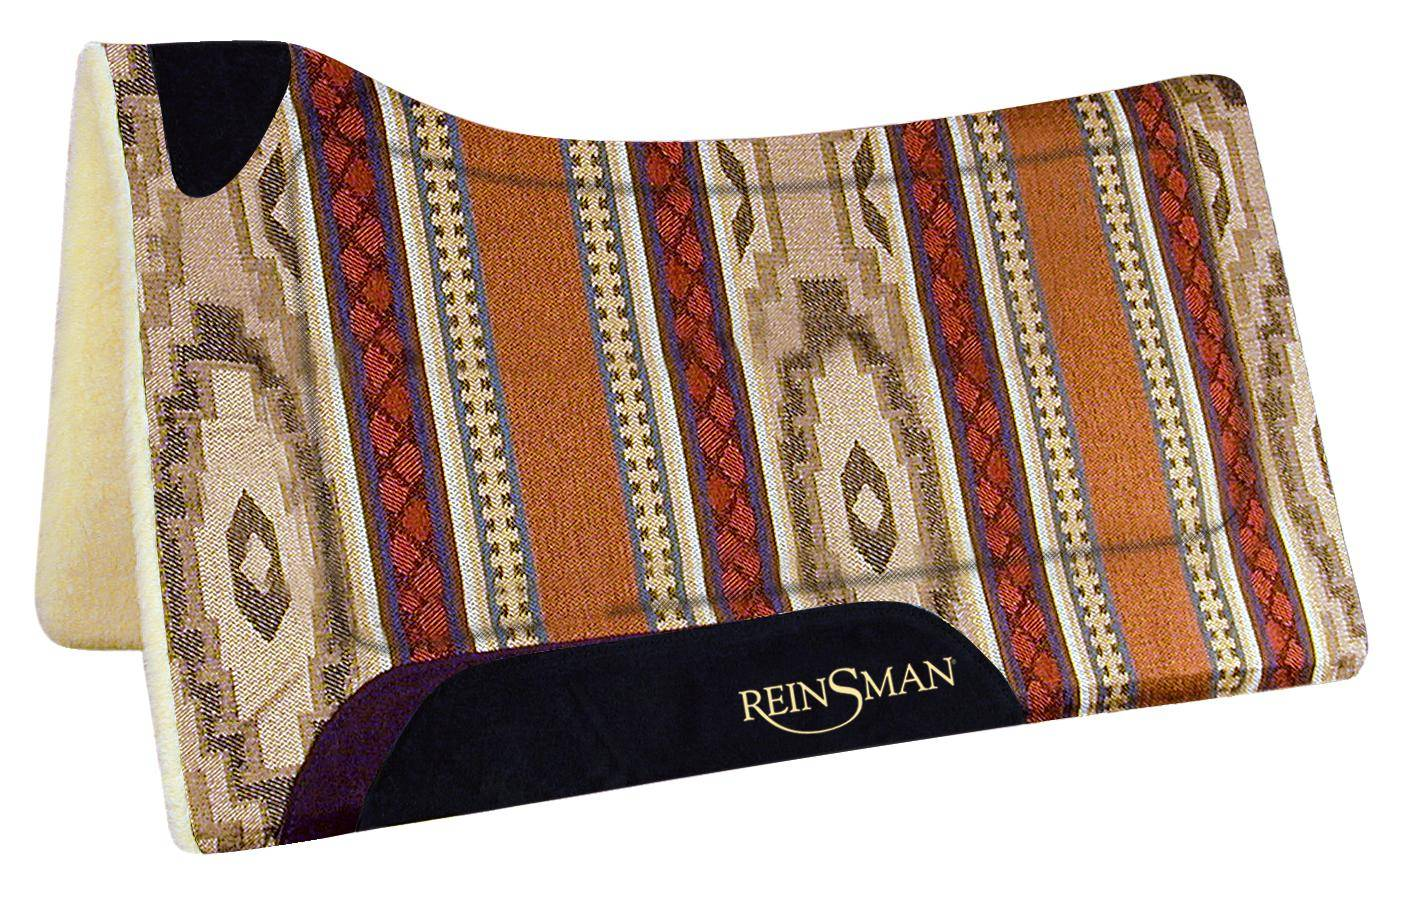 REINSMAN Square Fleece Contour Herculon Pad - Apache Red Print